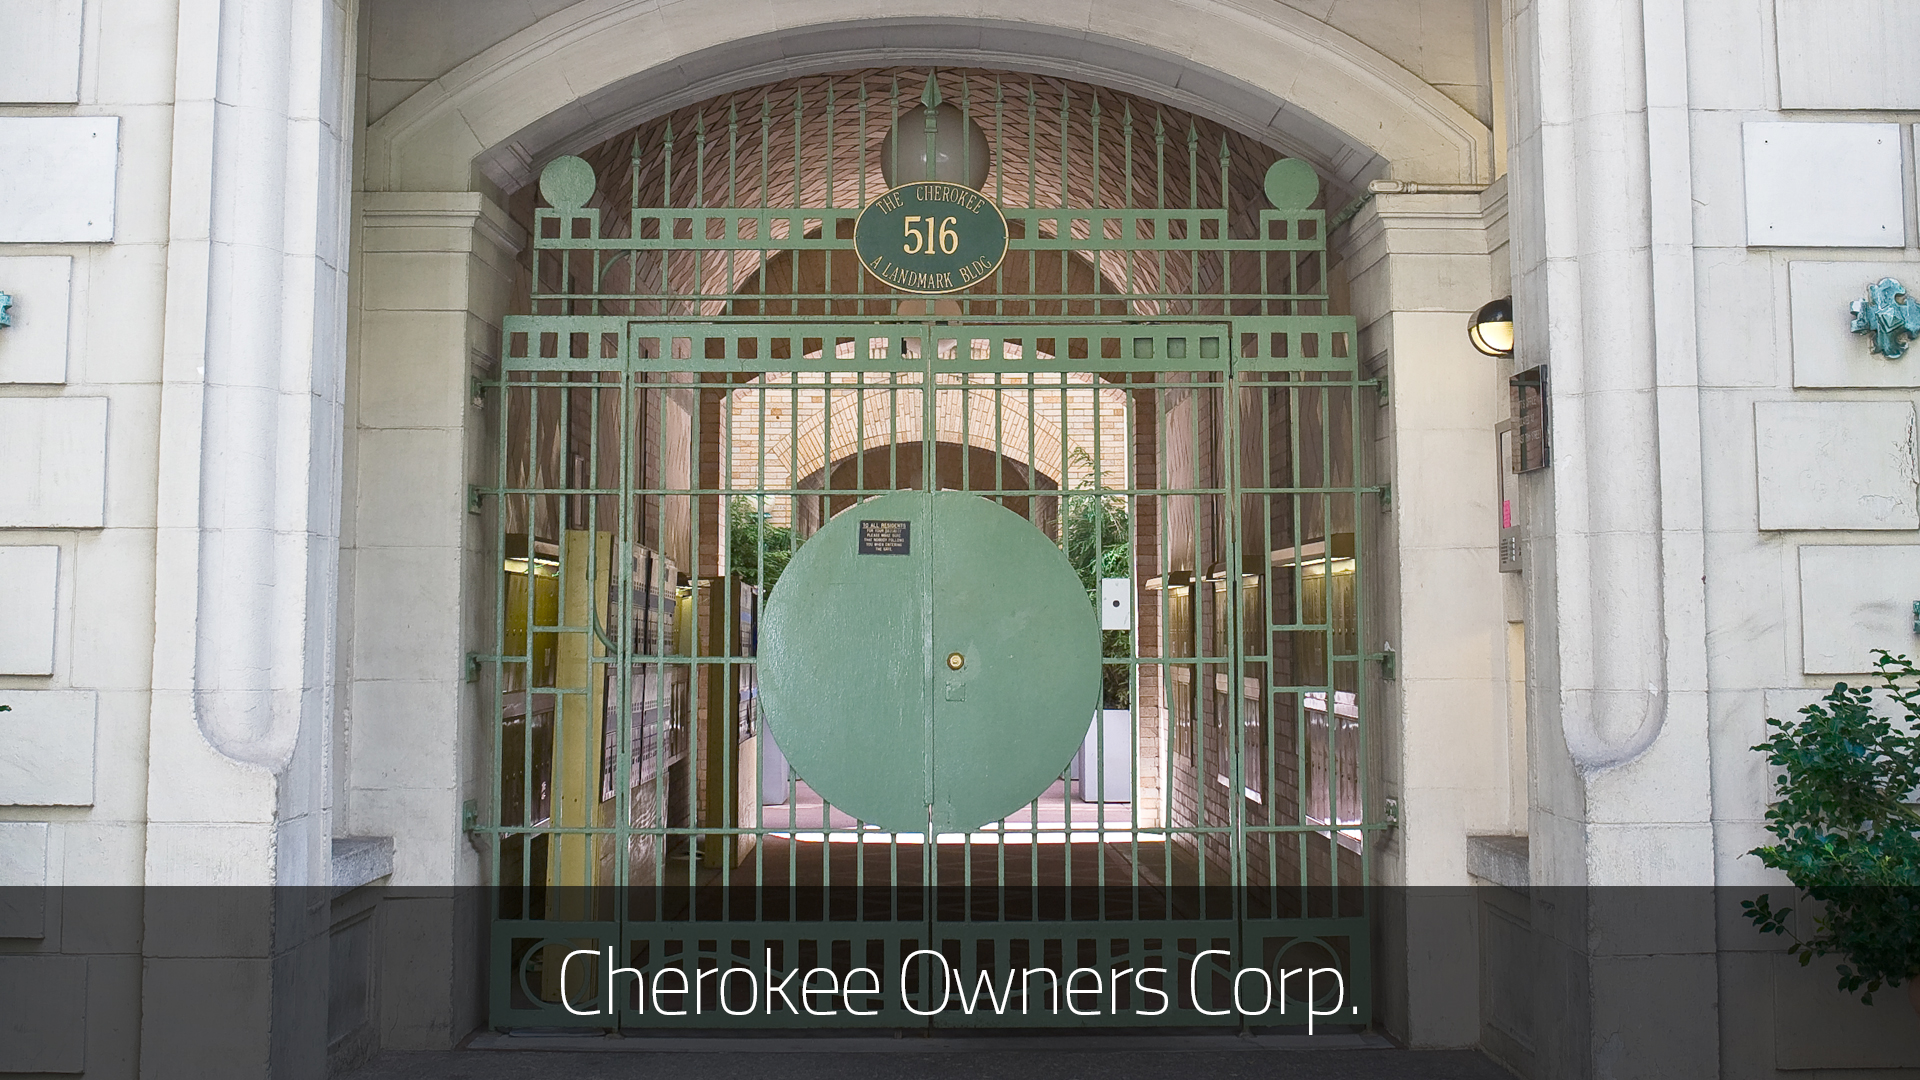 Cherokee owners corp